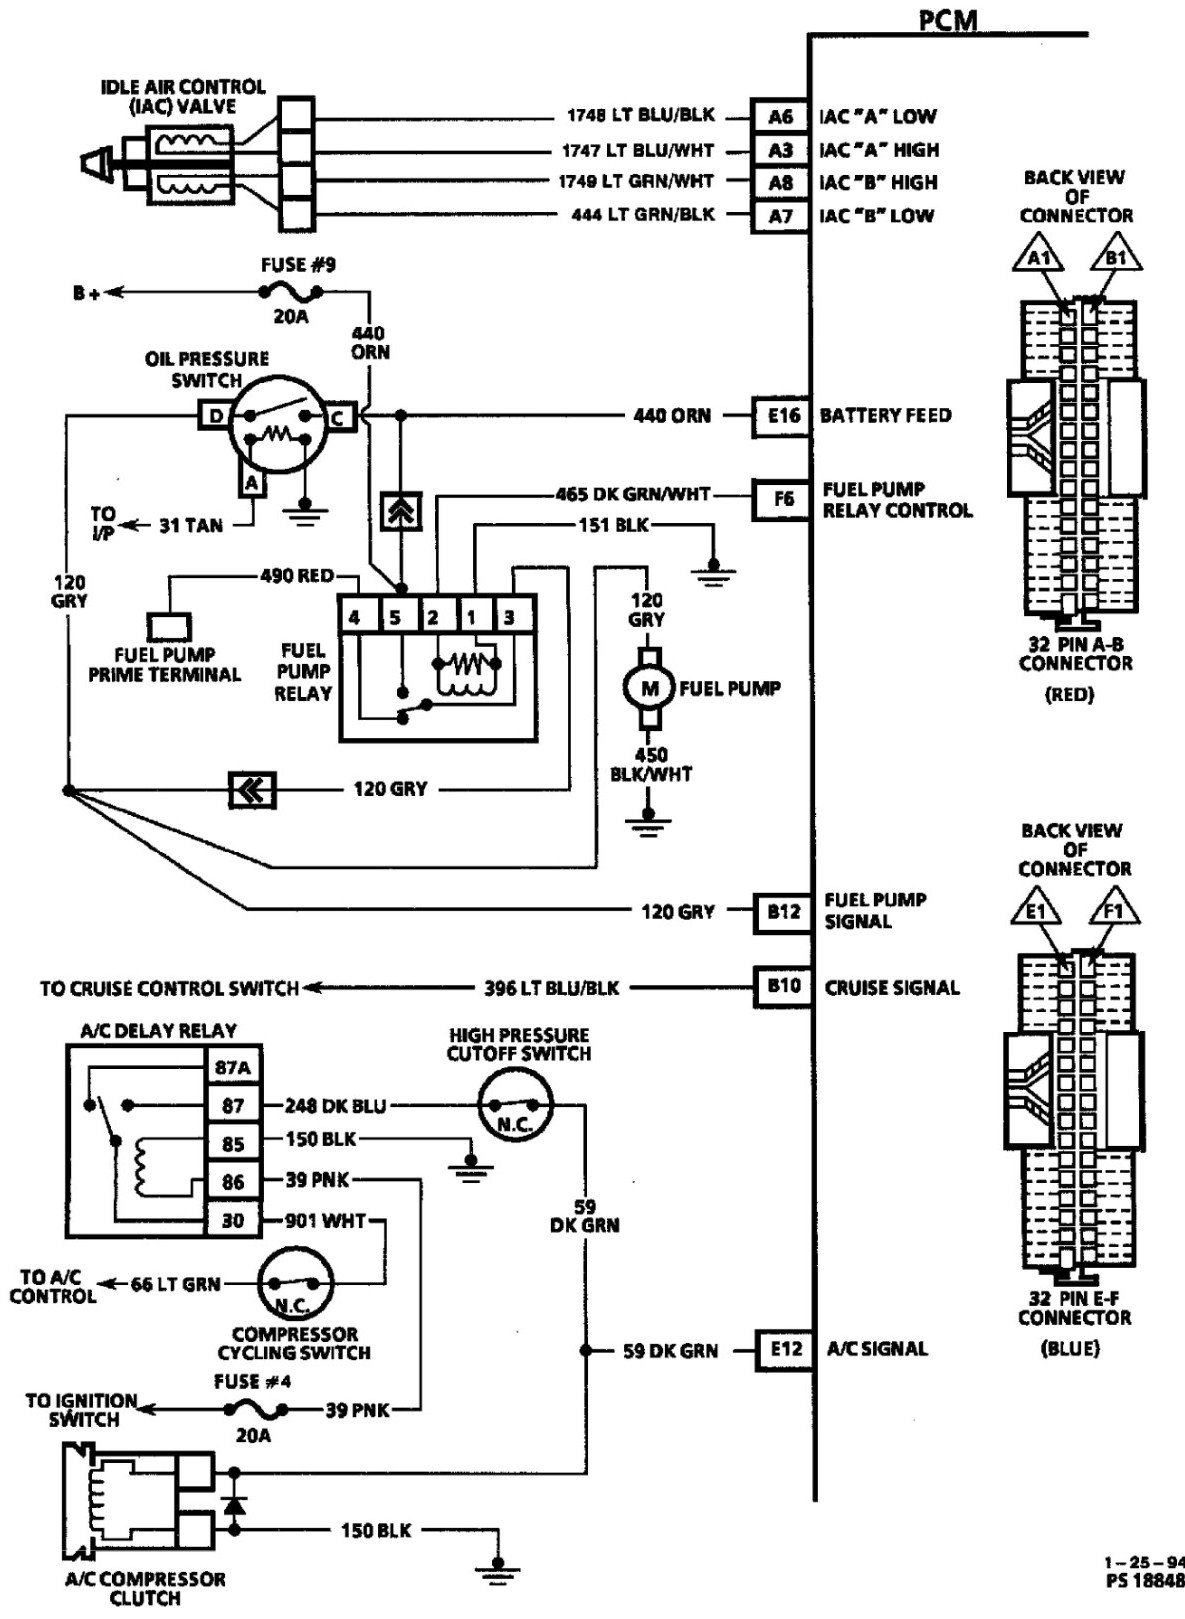 98 Chevy Blazer Fuel Gauge Wiring - wiring diagram on the net on